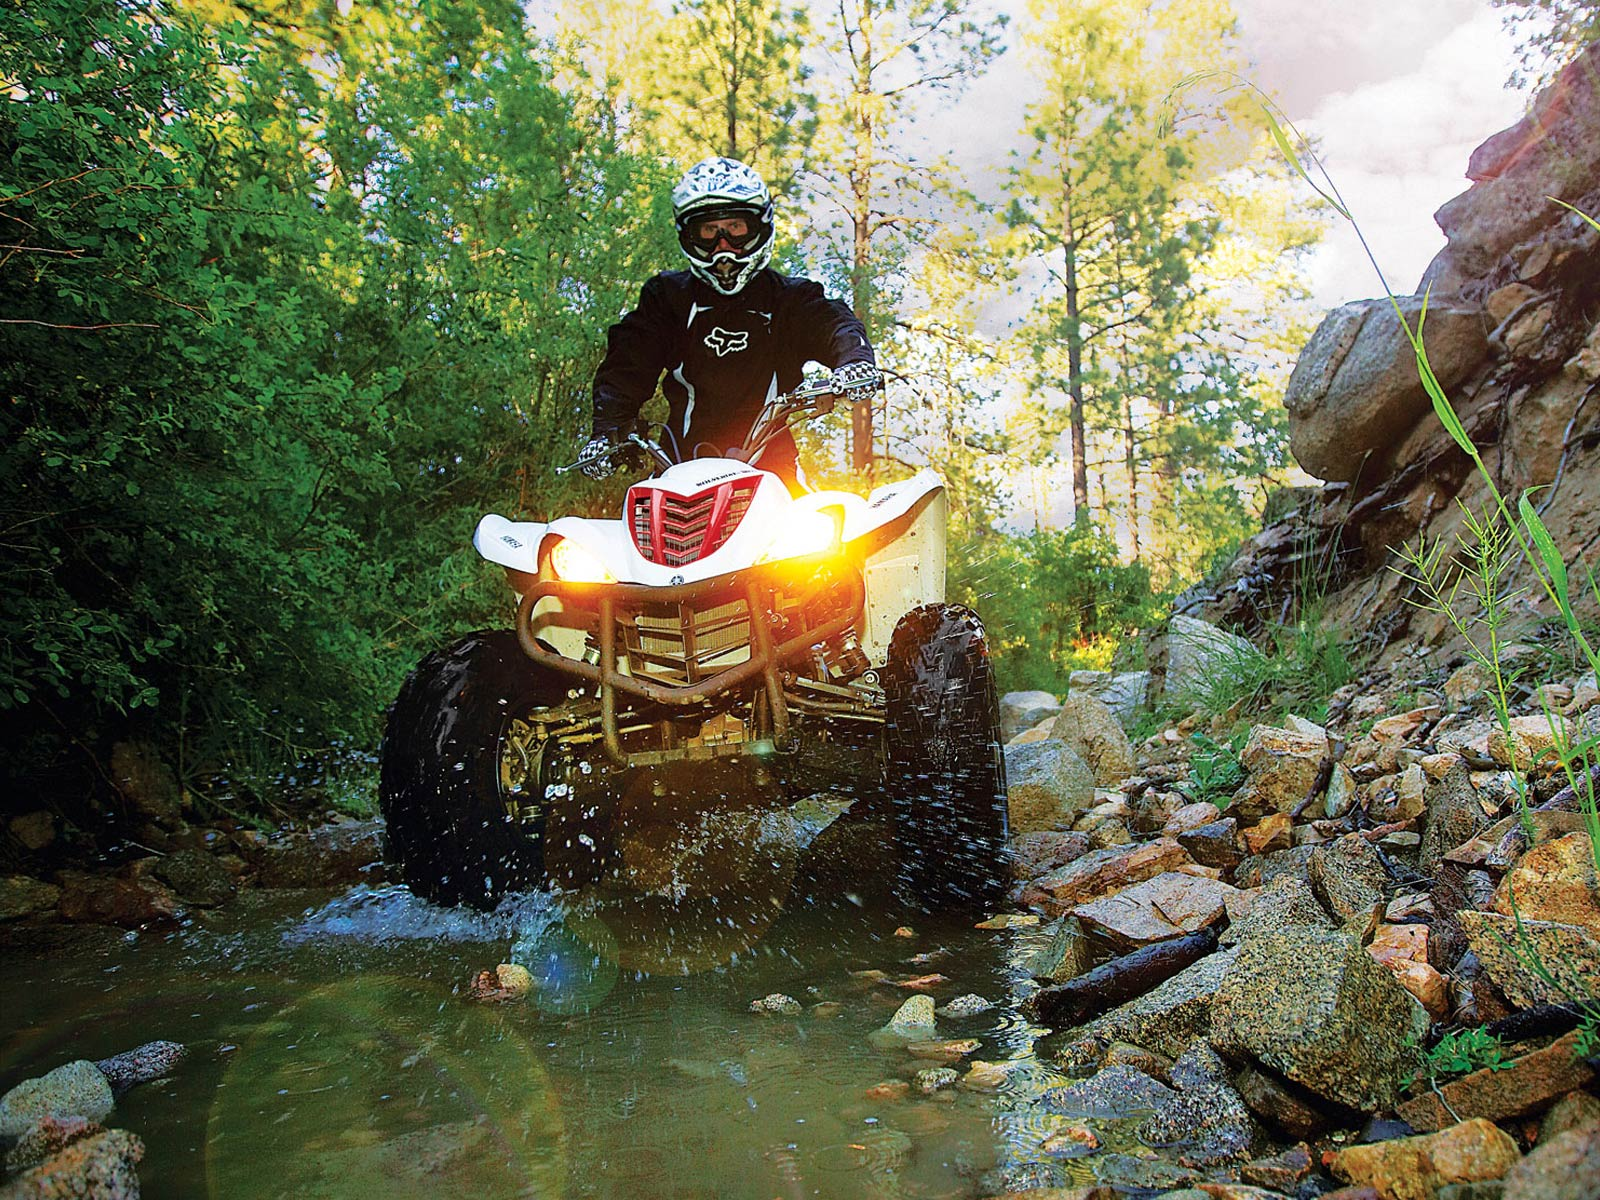 2010 yamaha wolverine 450 4x4 atv wallpapers specifications